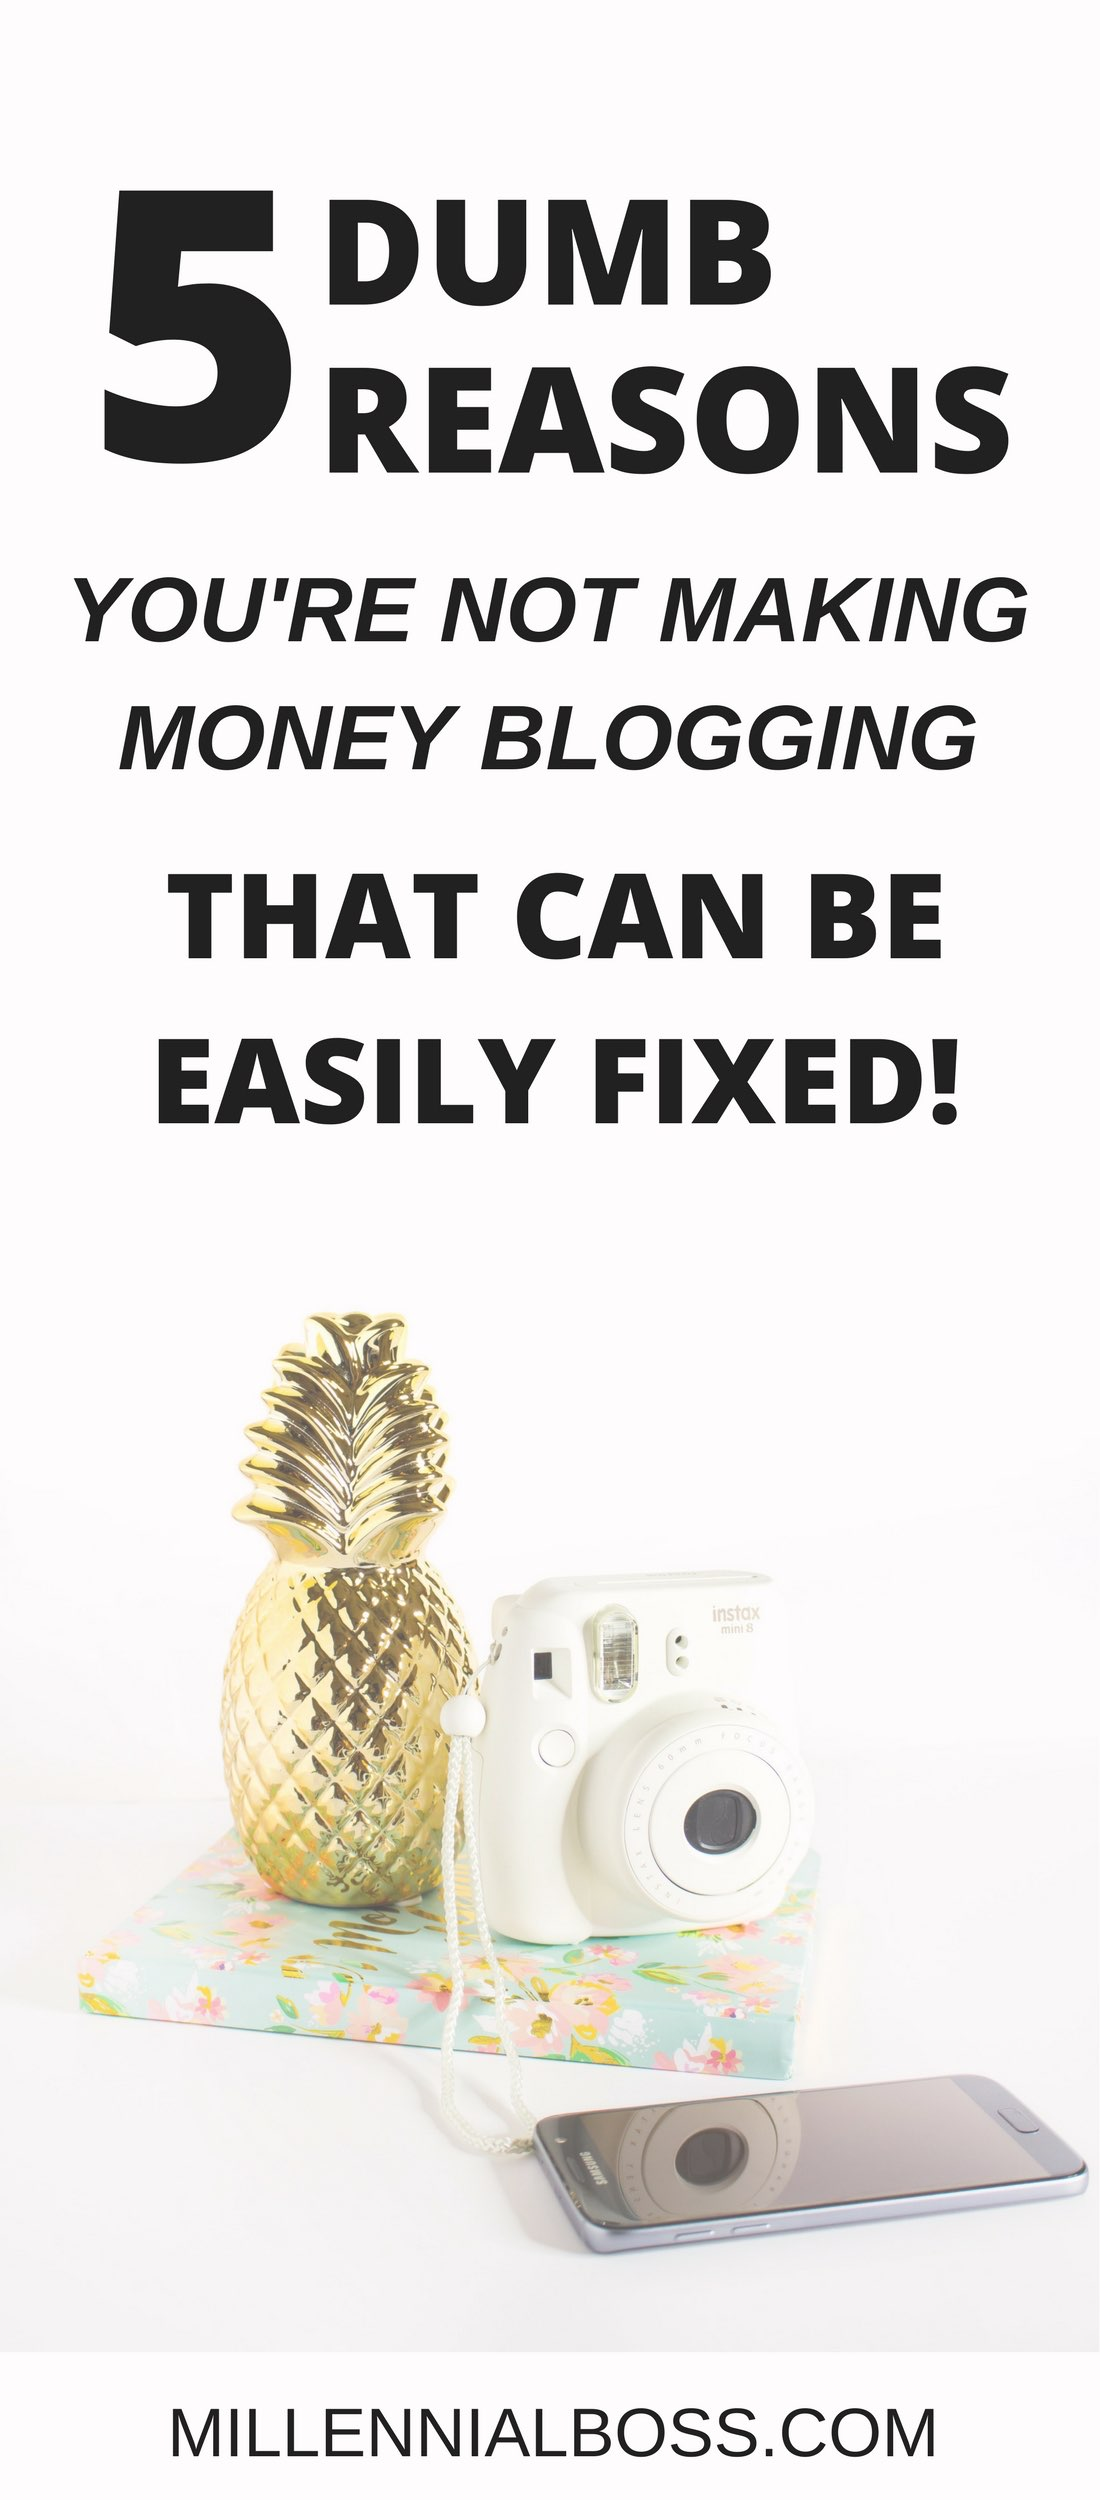 Great advice on how to make money on your blog! (When you're frustrated and ready to give up on your blog!)